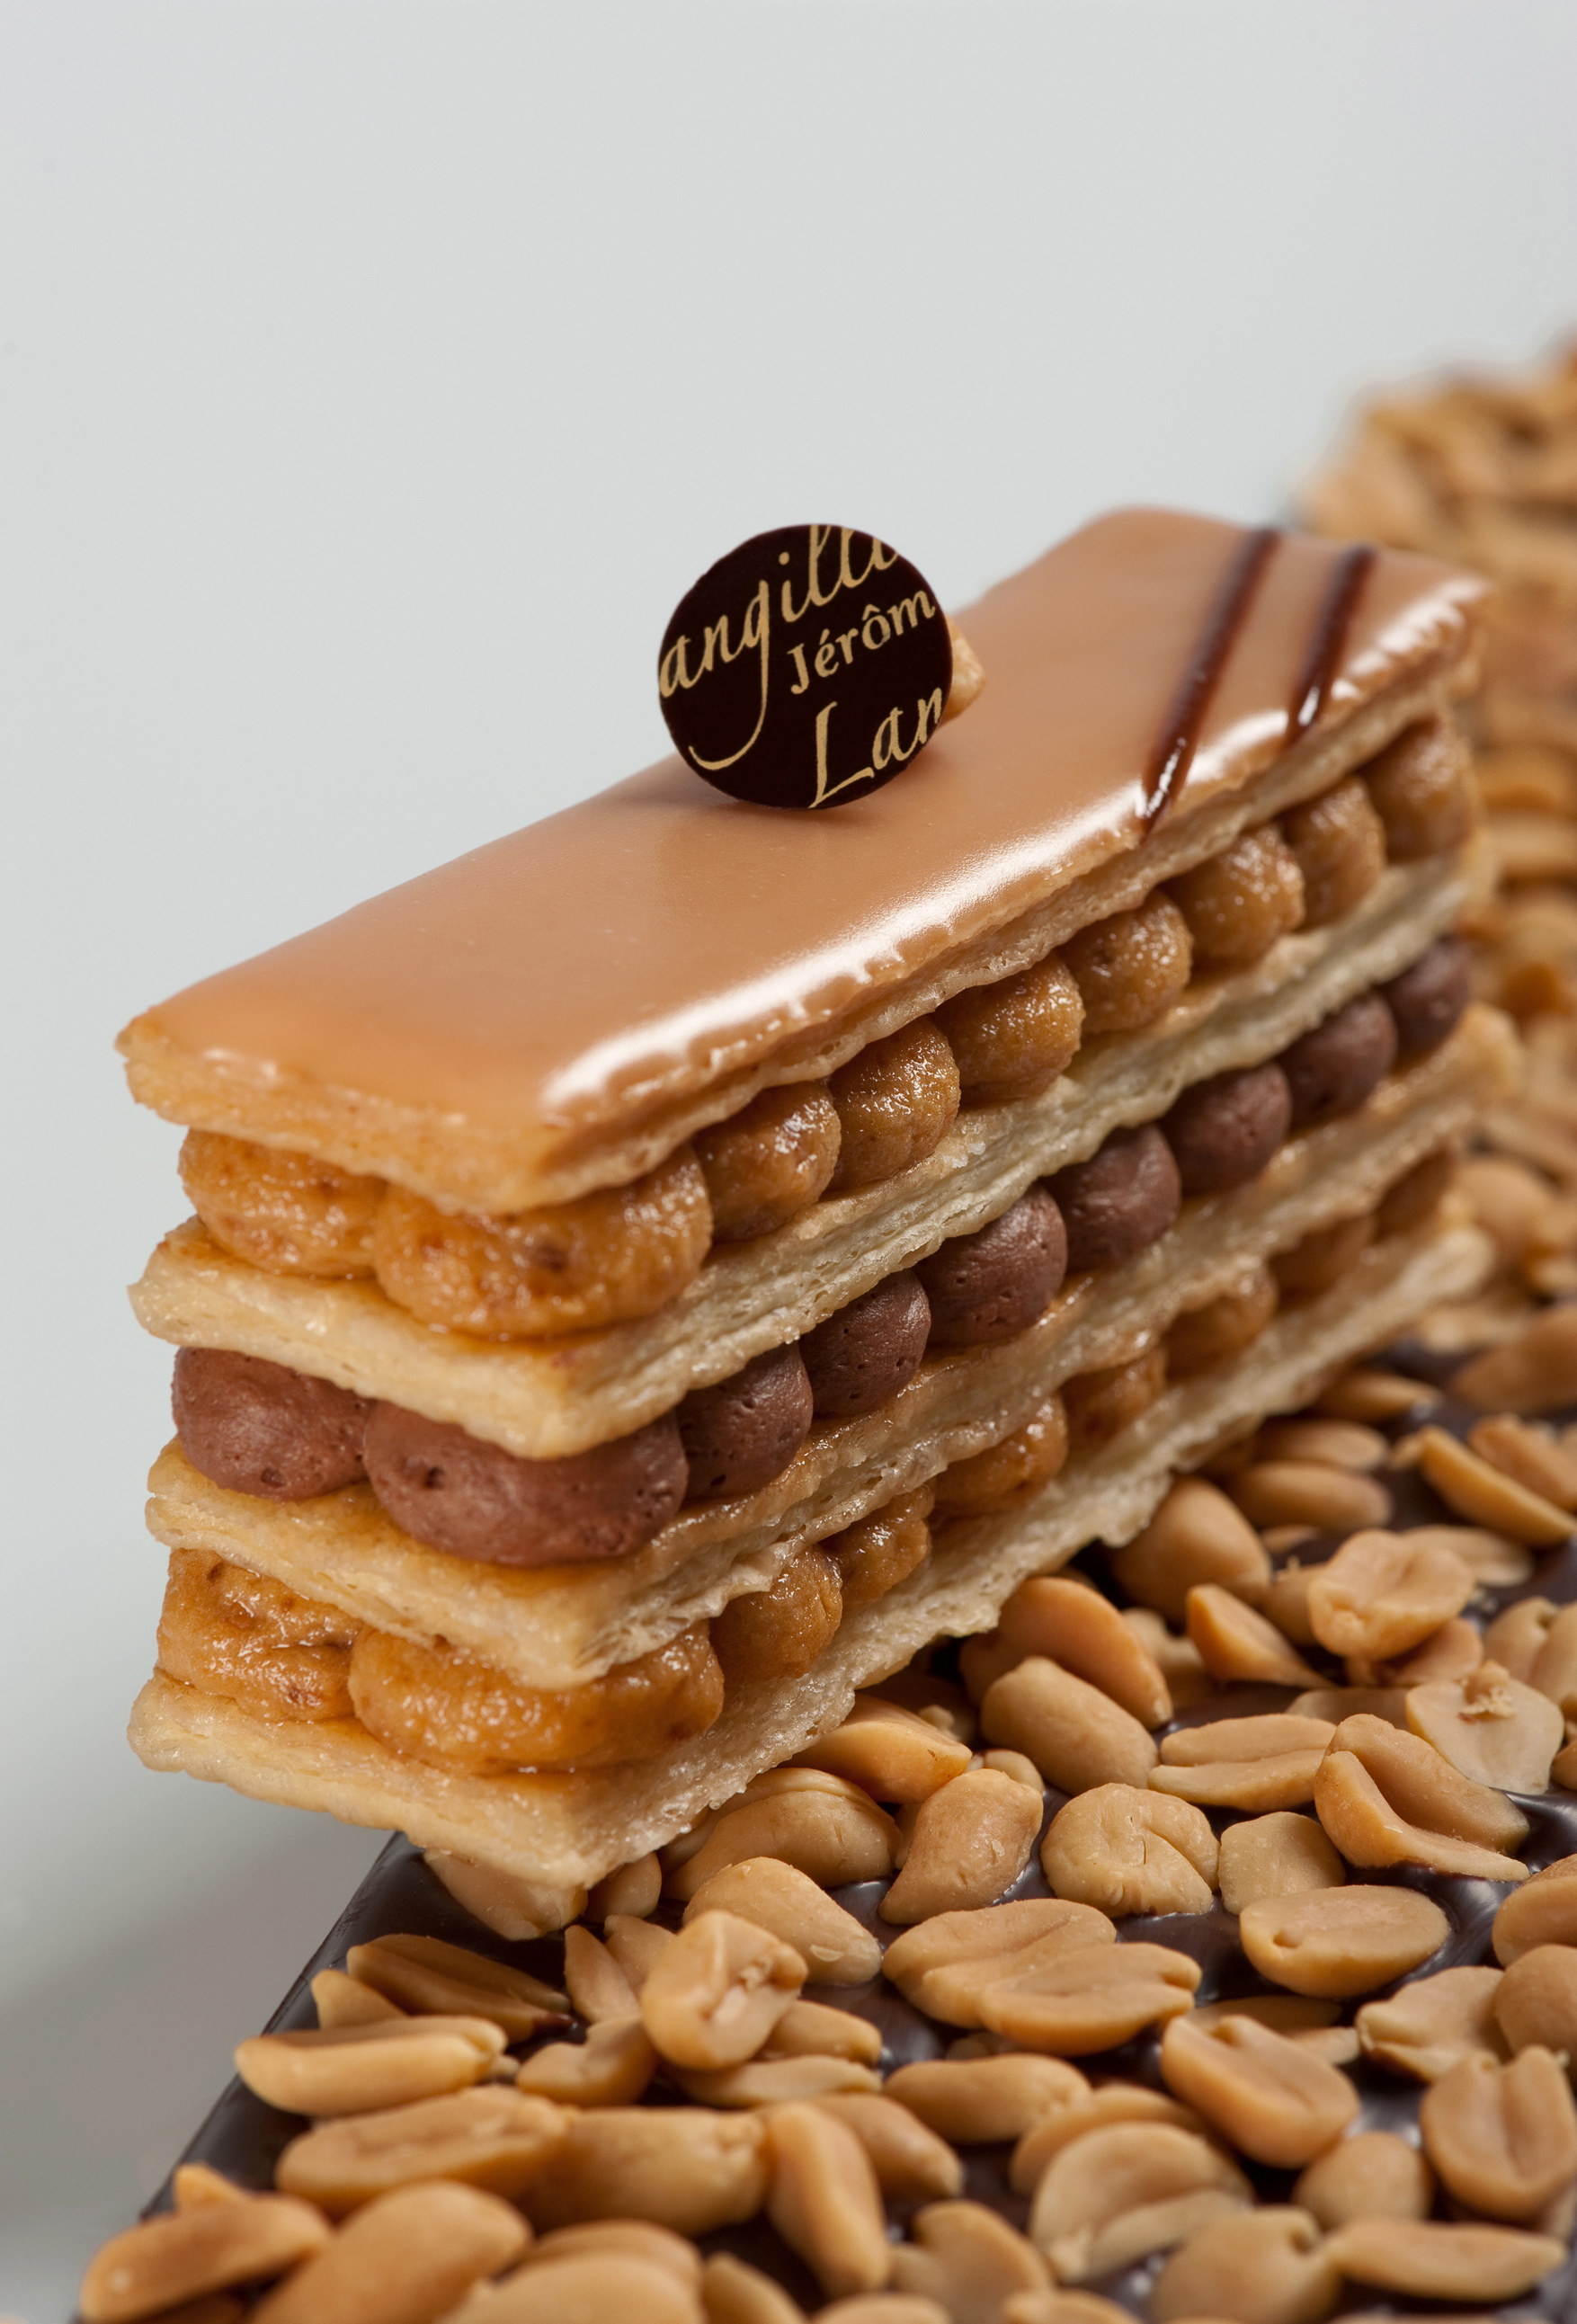 7_Millefeuille_Cacahuete_Chocolat_Jerome_Langillier